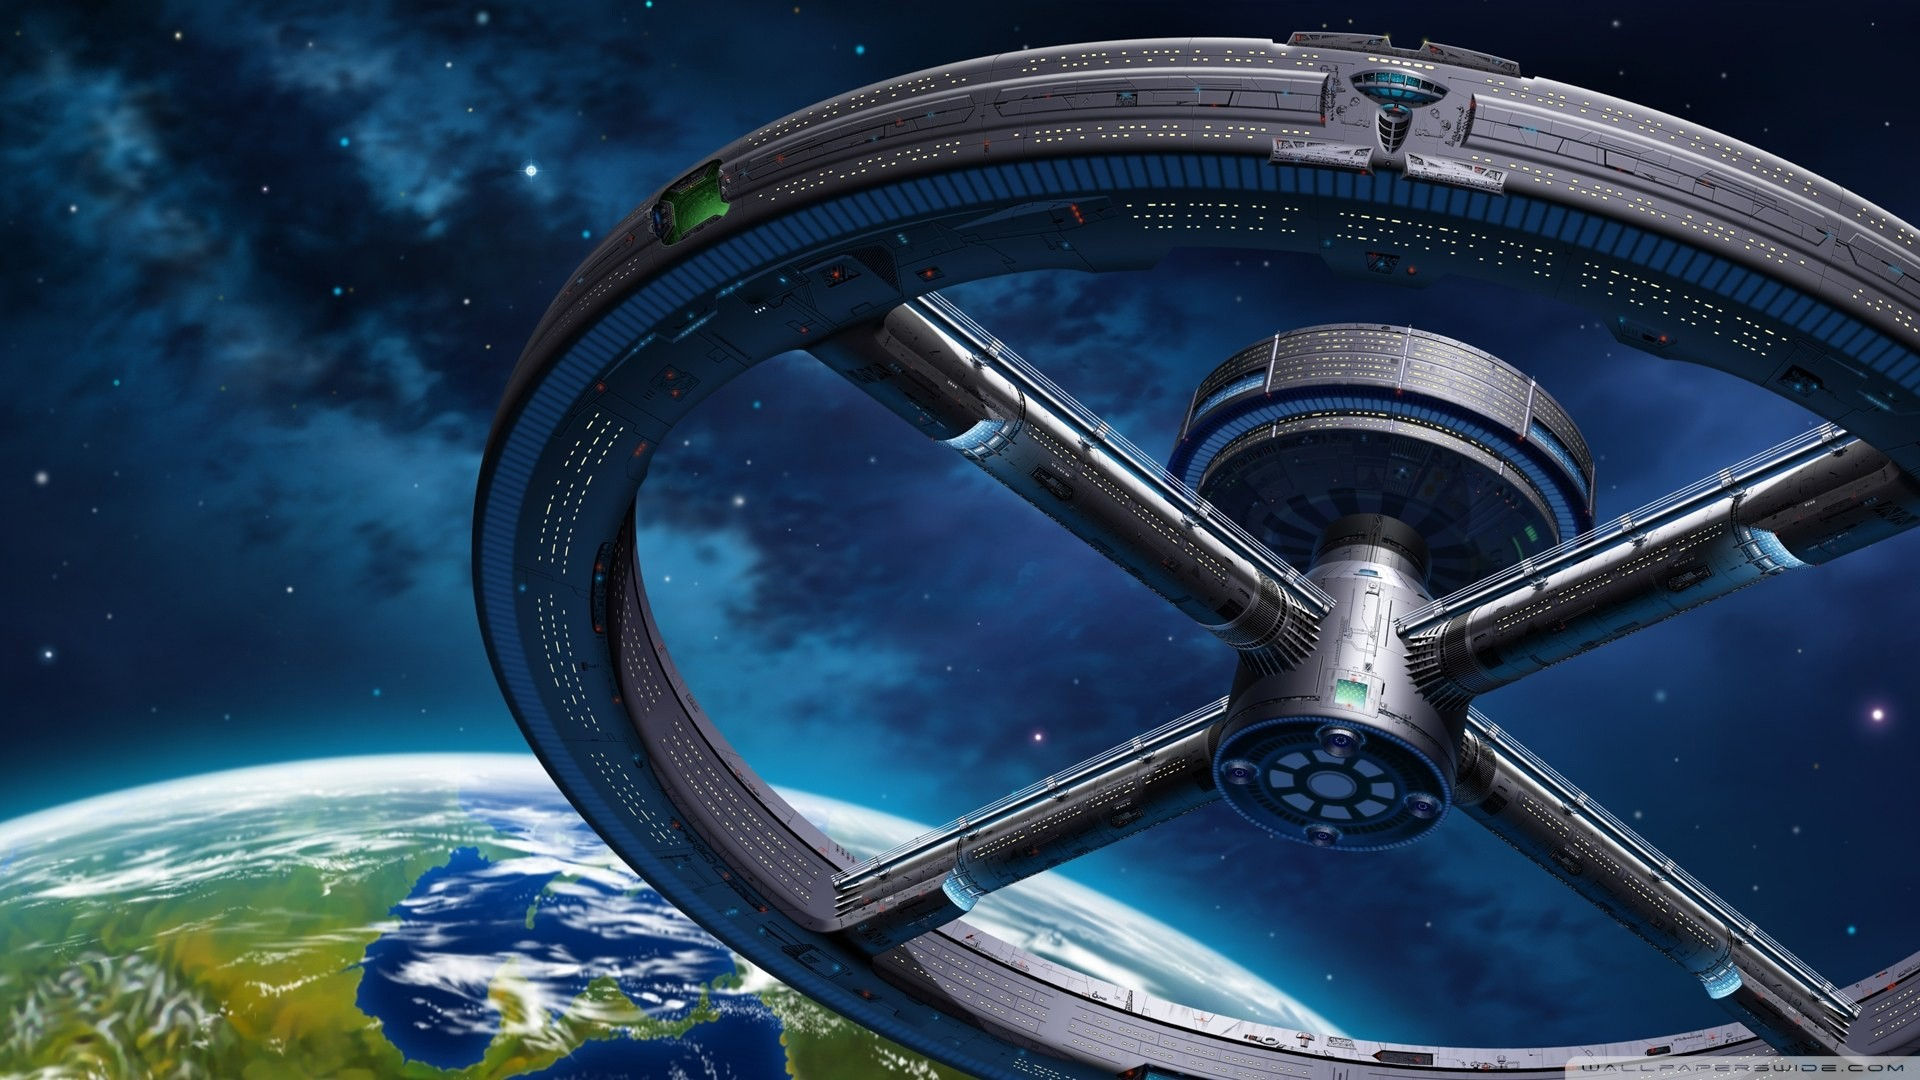 Space Ship Wallpapers 79+ images